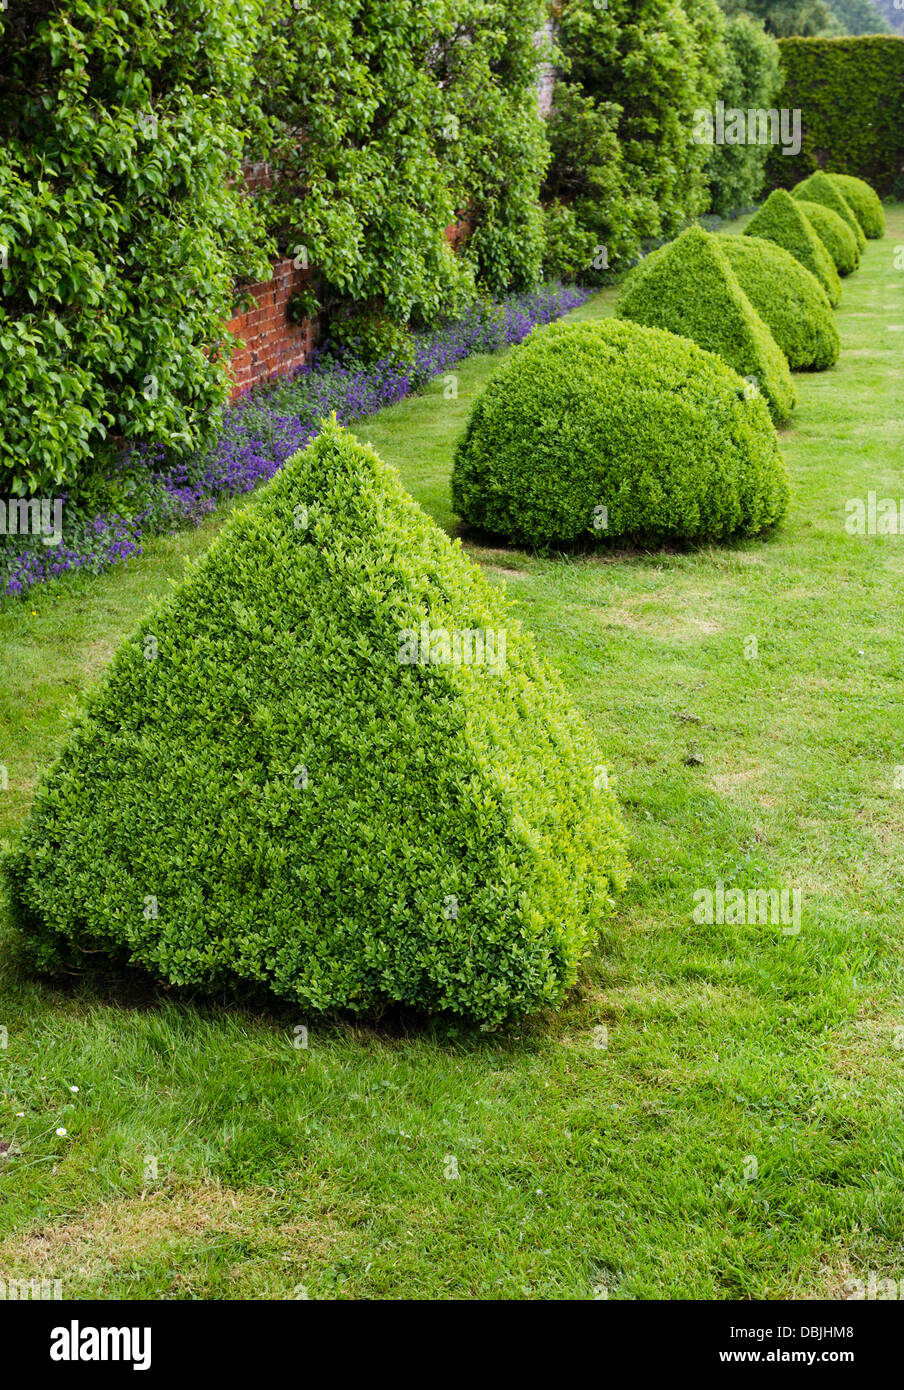 Topiary box hedging - buxes sempervirens - Stock Image